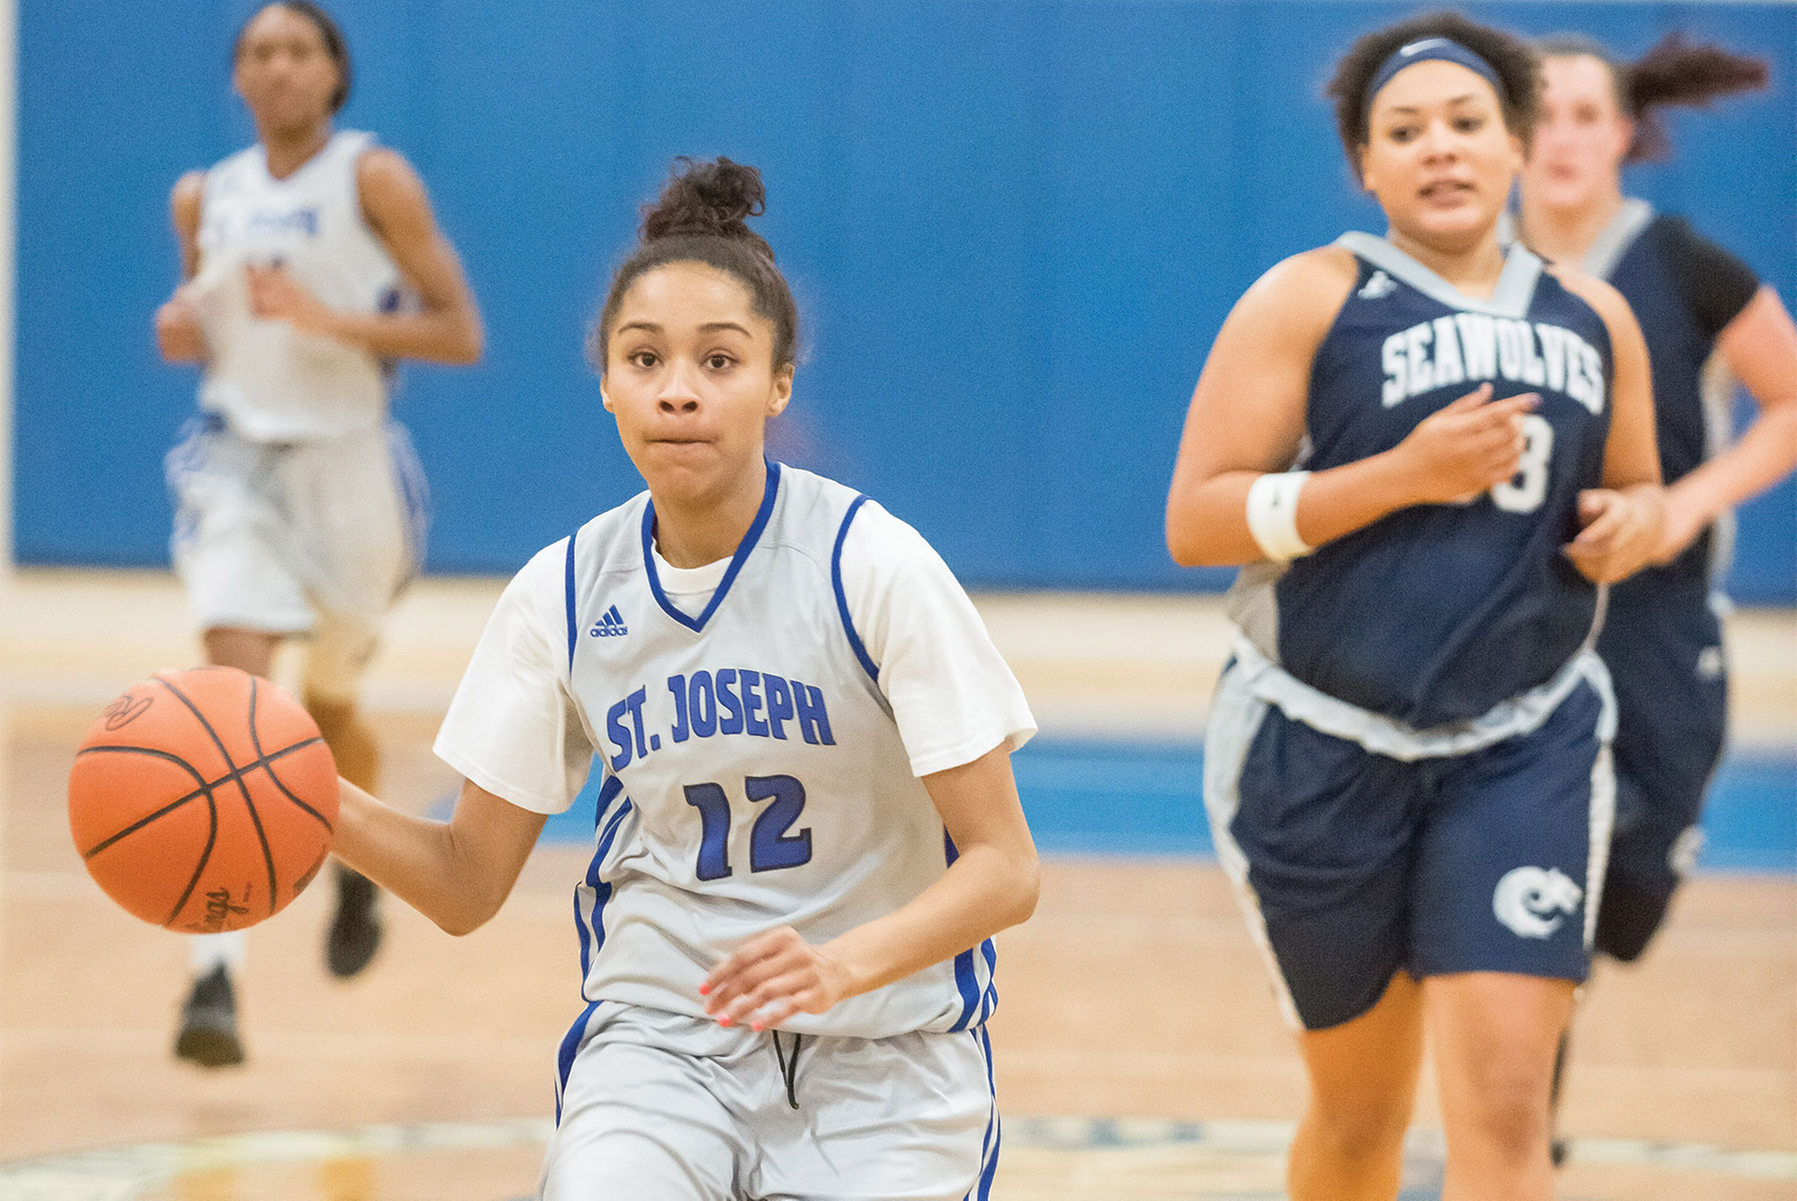 Lady Saints win close game against Southern Maine CC